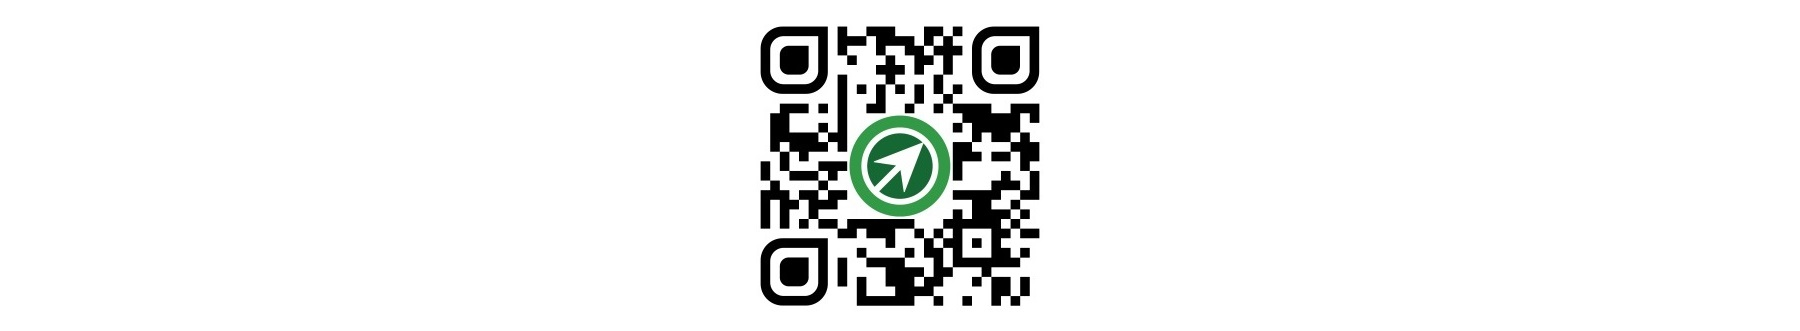 https://campaign-image.com/zohocampaigns/479159000000605004_zc_v141_otds_qrcode_for_newsletter2.jpg